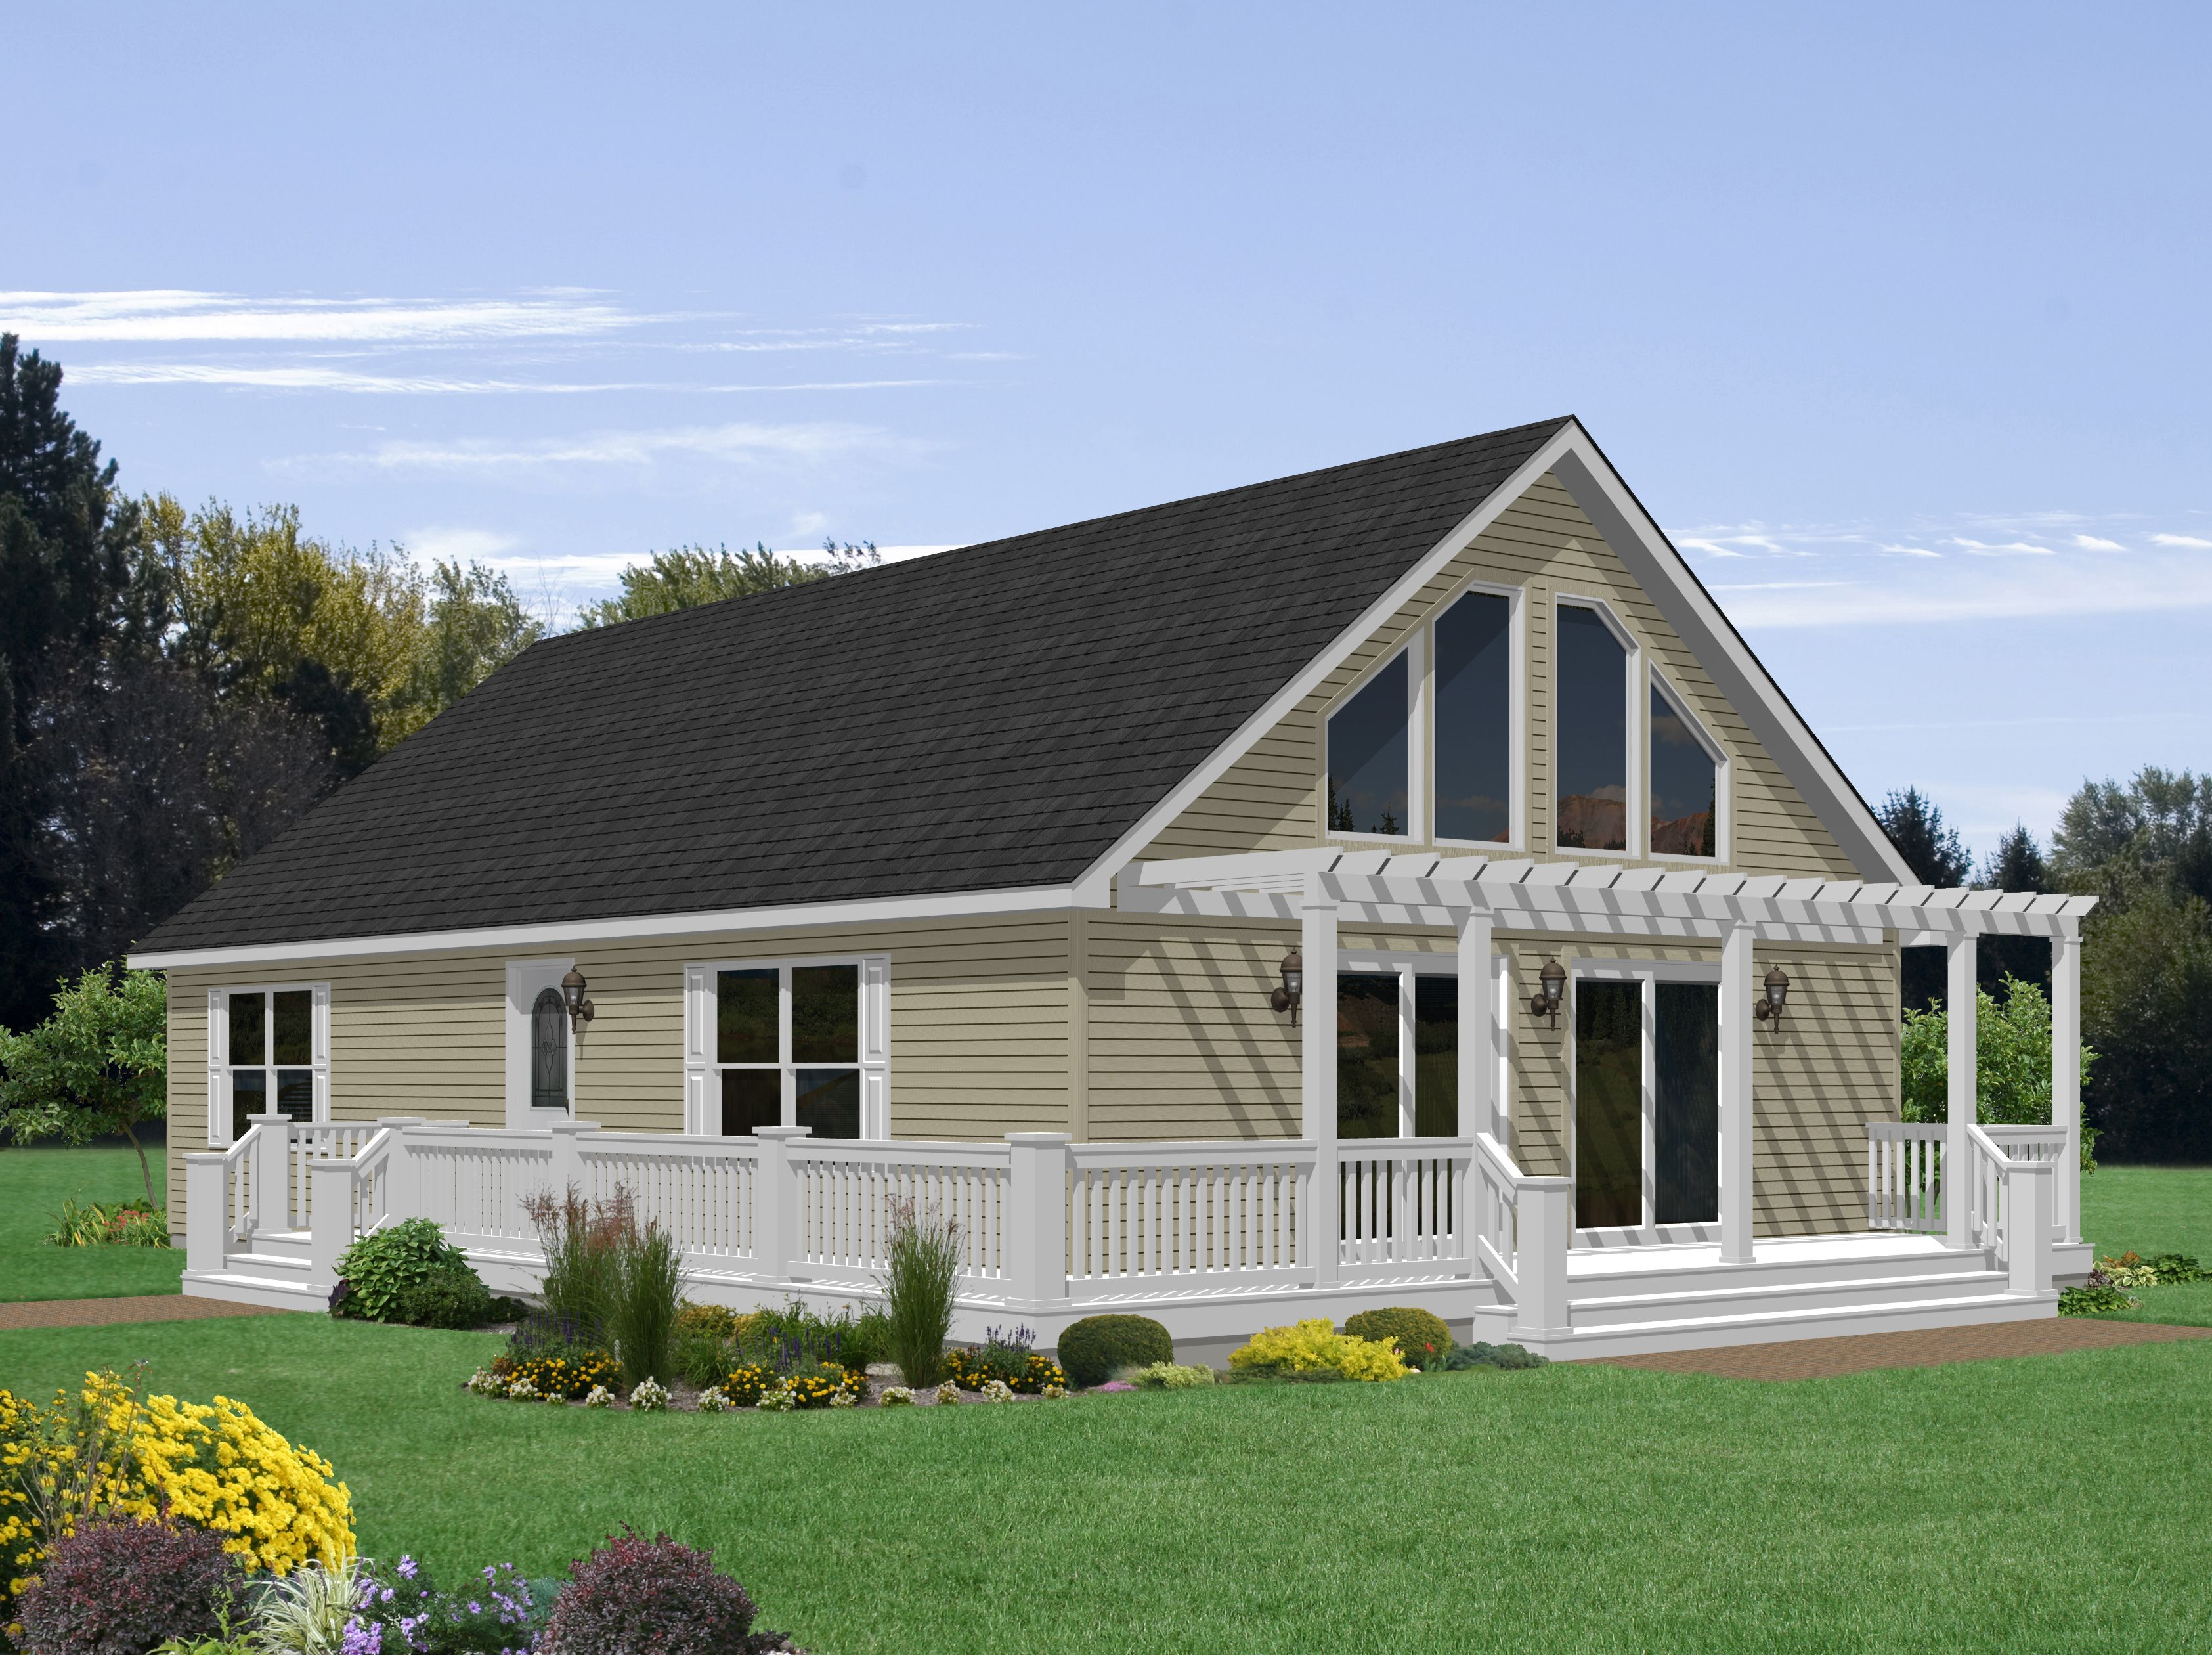 Modular Ranch Homes With Cathedral Ceilings | www ...